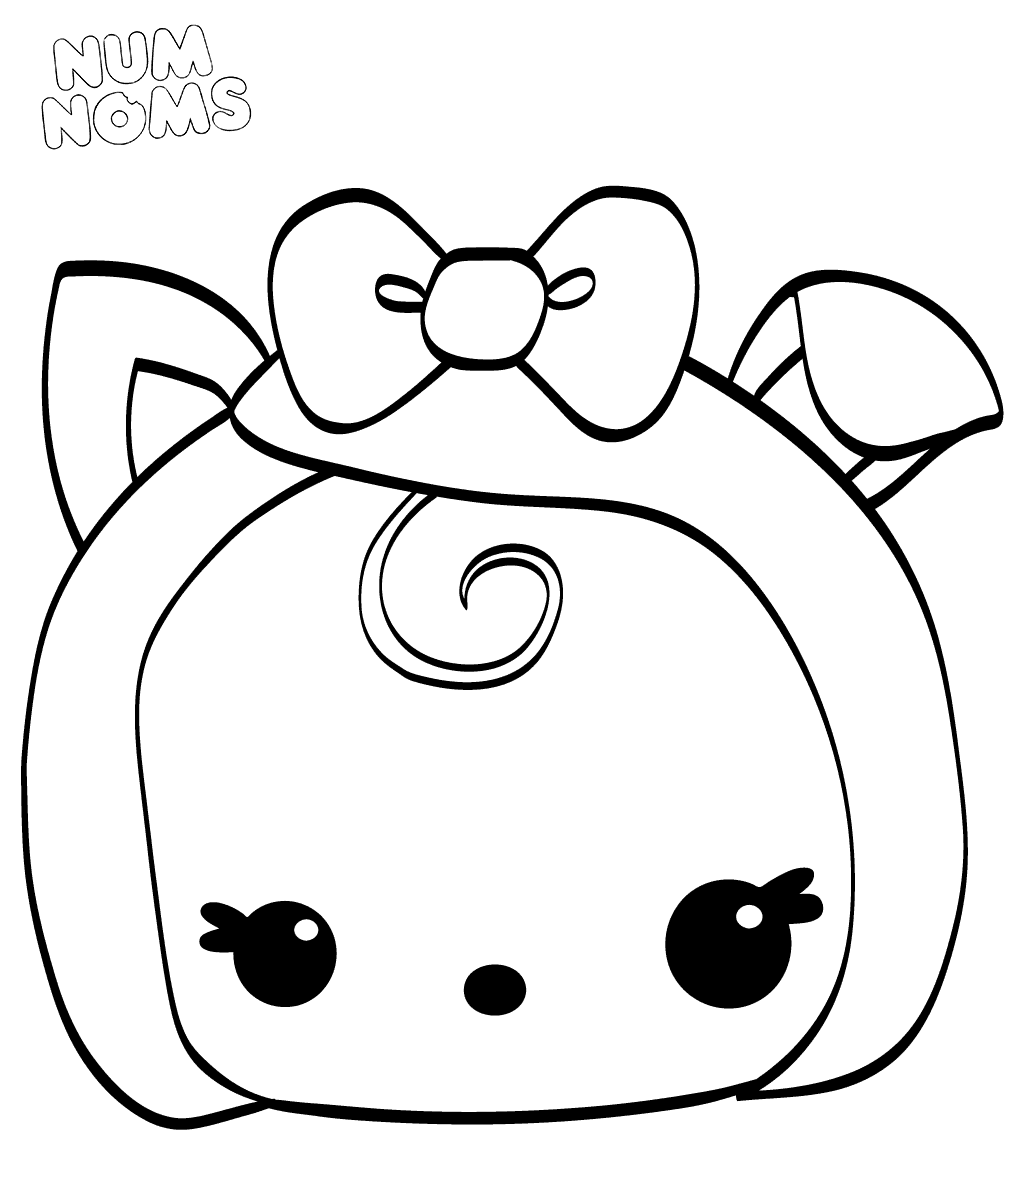 Num Noms Coloring Pages Becca Bacon Cartoon Coloring Pages Cute Coloring Pages Coloring Pages